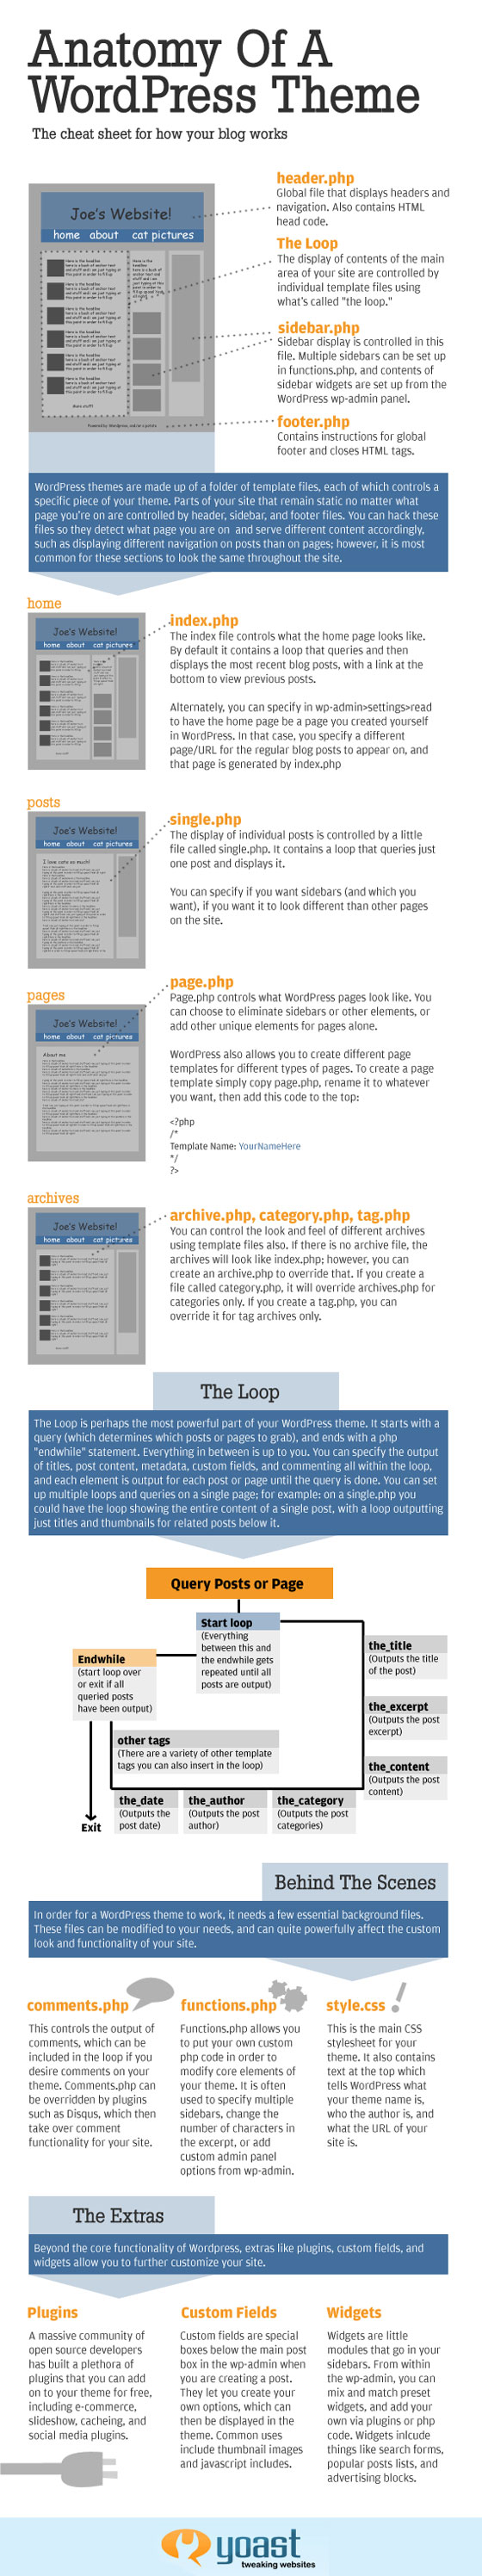 anatomie-theme-wordpress